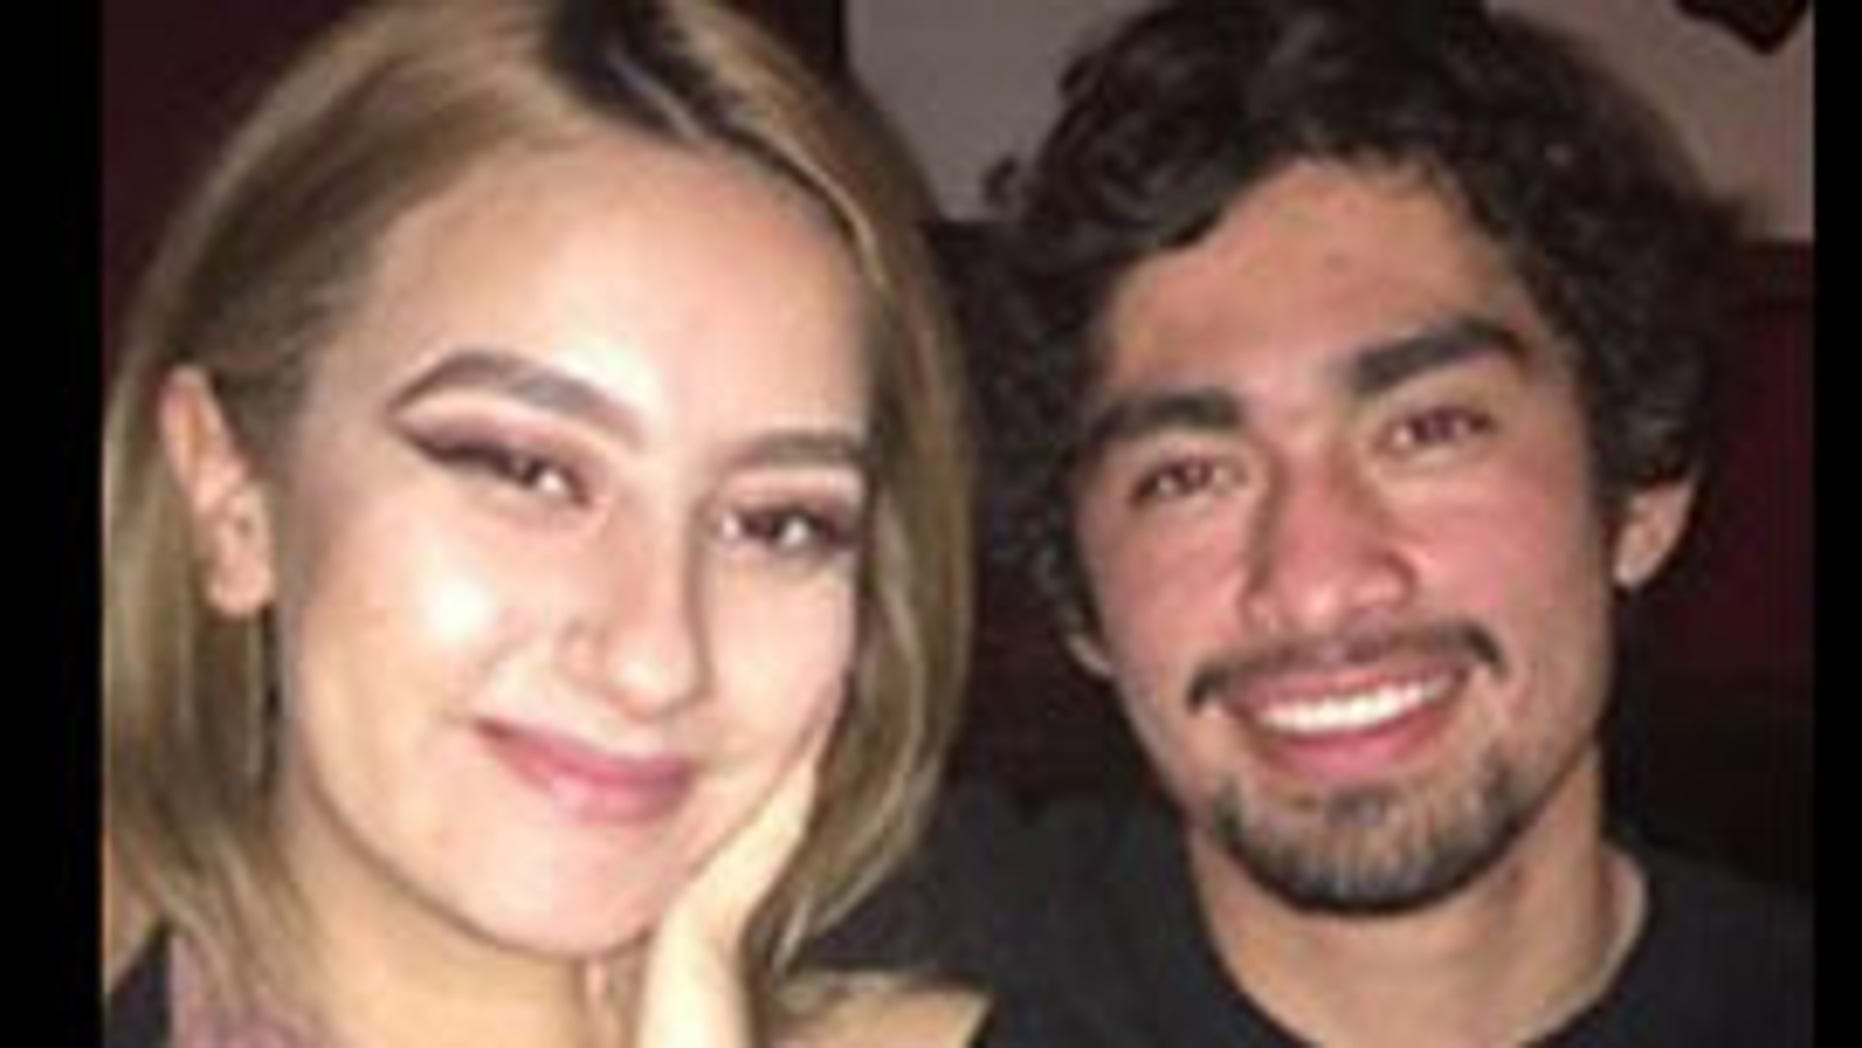 This undated photo shows Olivia Hannah Gonzalez, 20, and Brian Fernandez, 21. Gonzalez's body was found Tuesday near the wreckage of the couple's car on the California coast